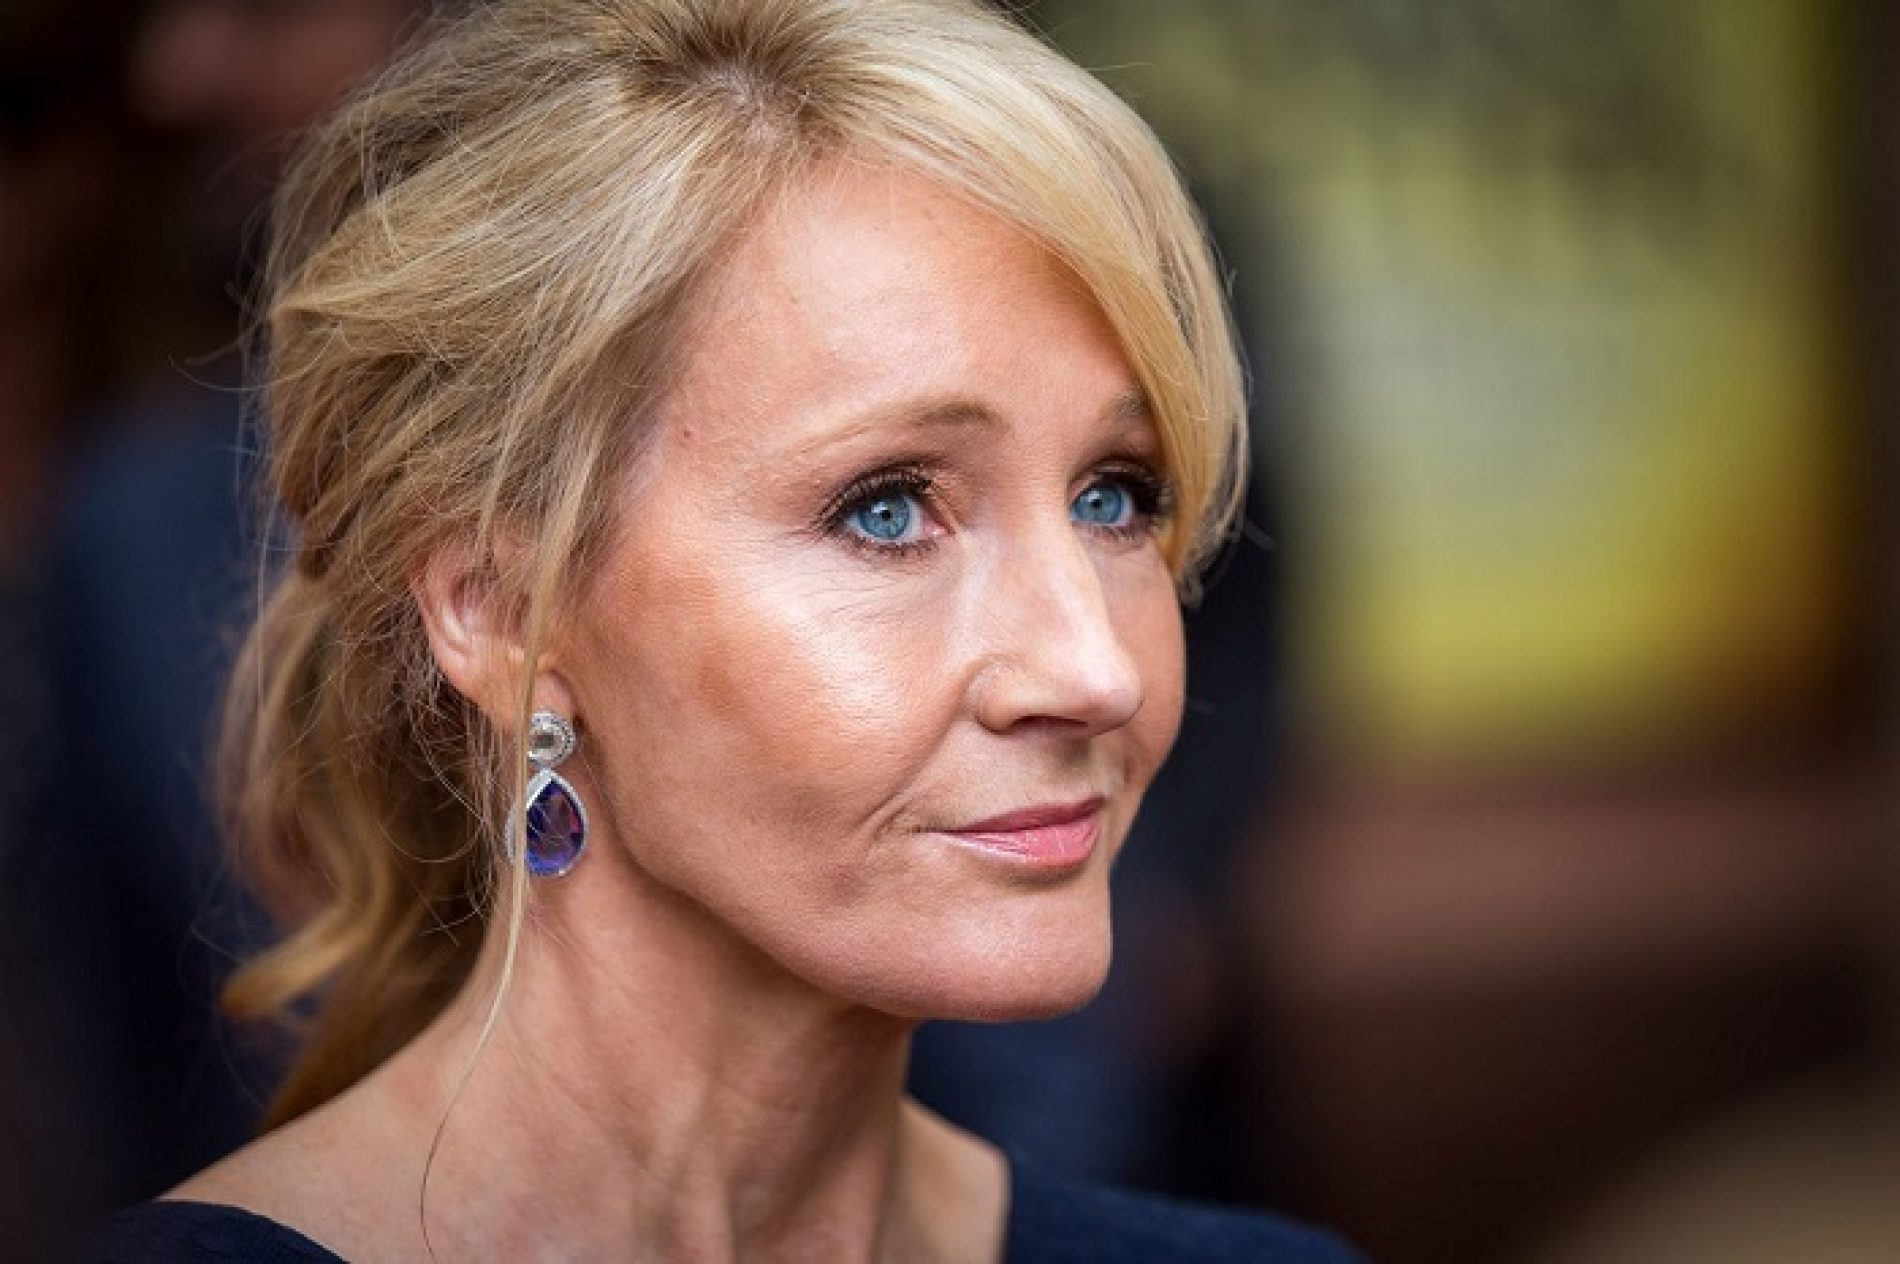 Harry Potter Fans mock JK Rowling's latest insistence that Dumbledore is gay